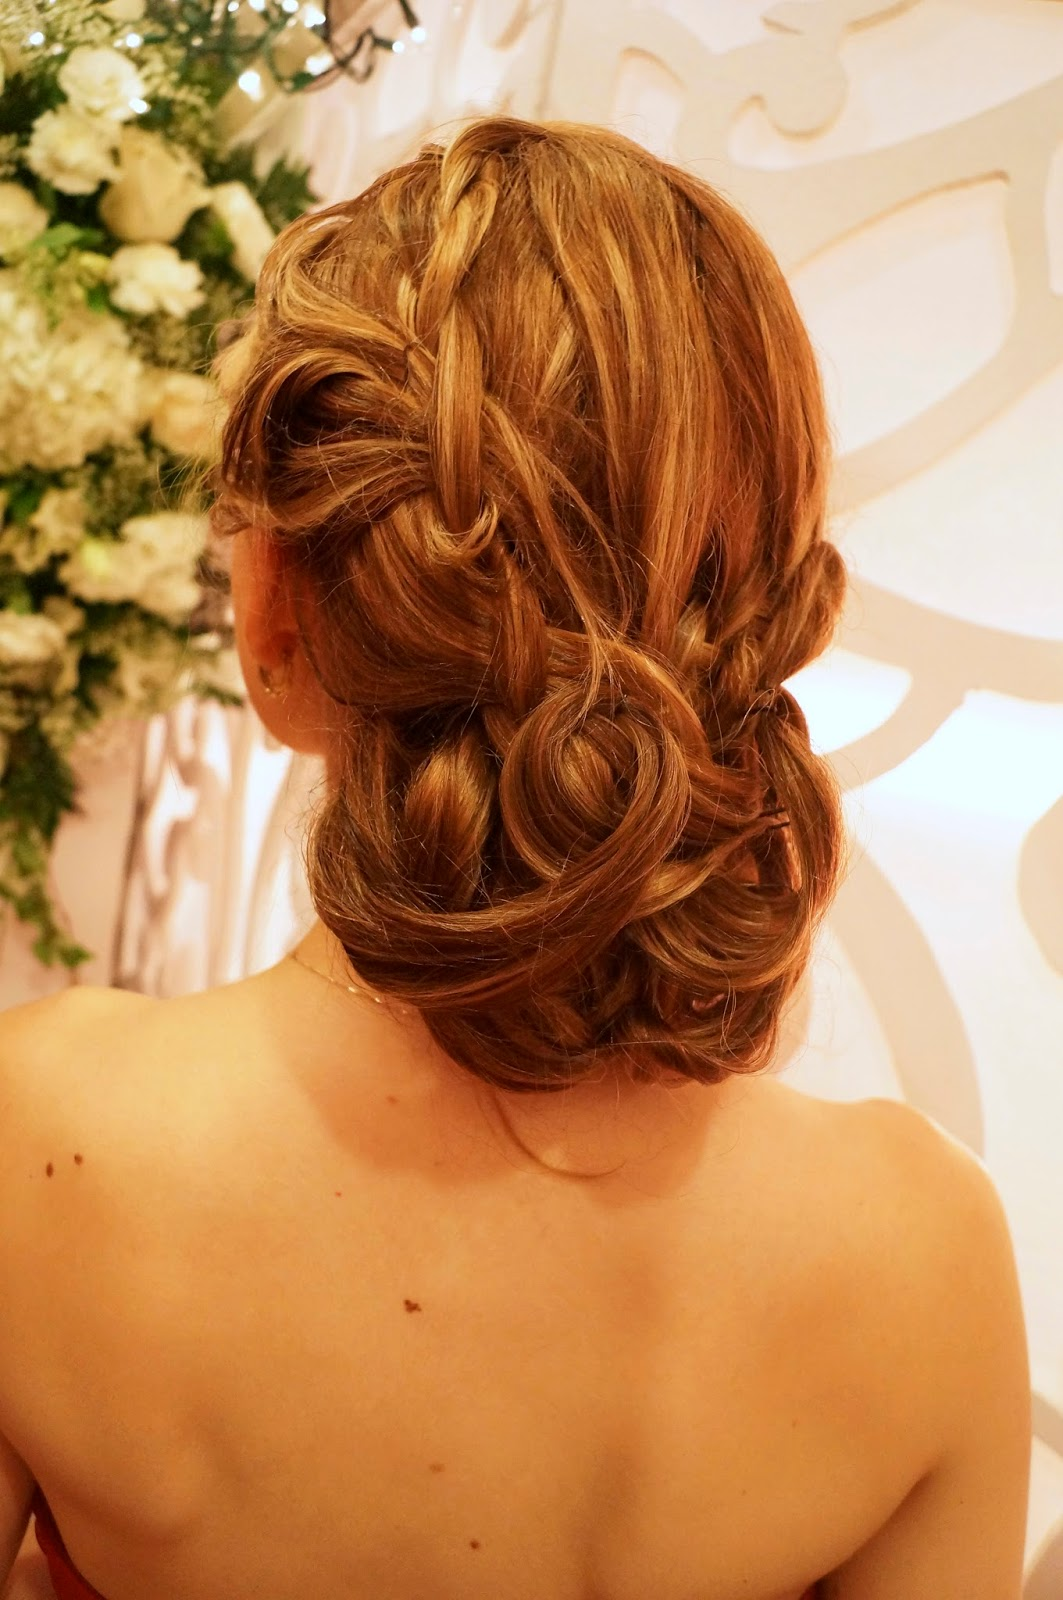 Romantic Wedding Updo Hairstyle